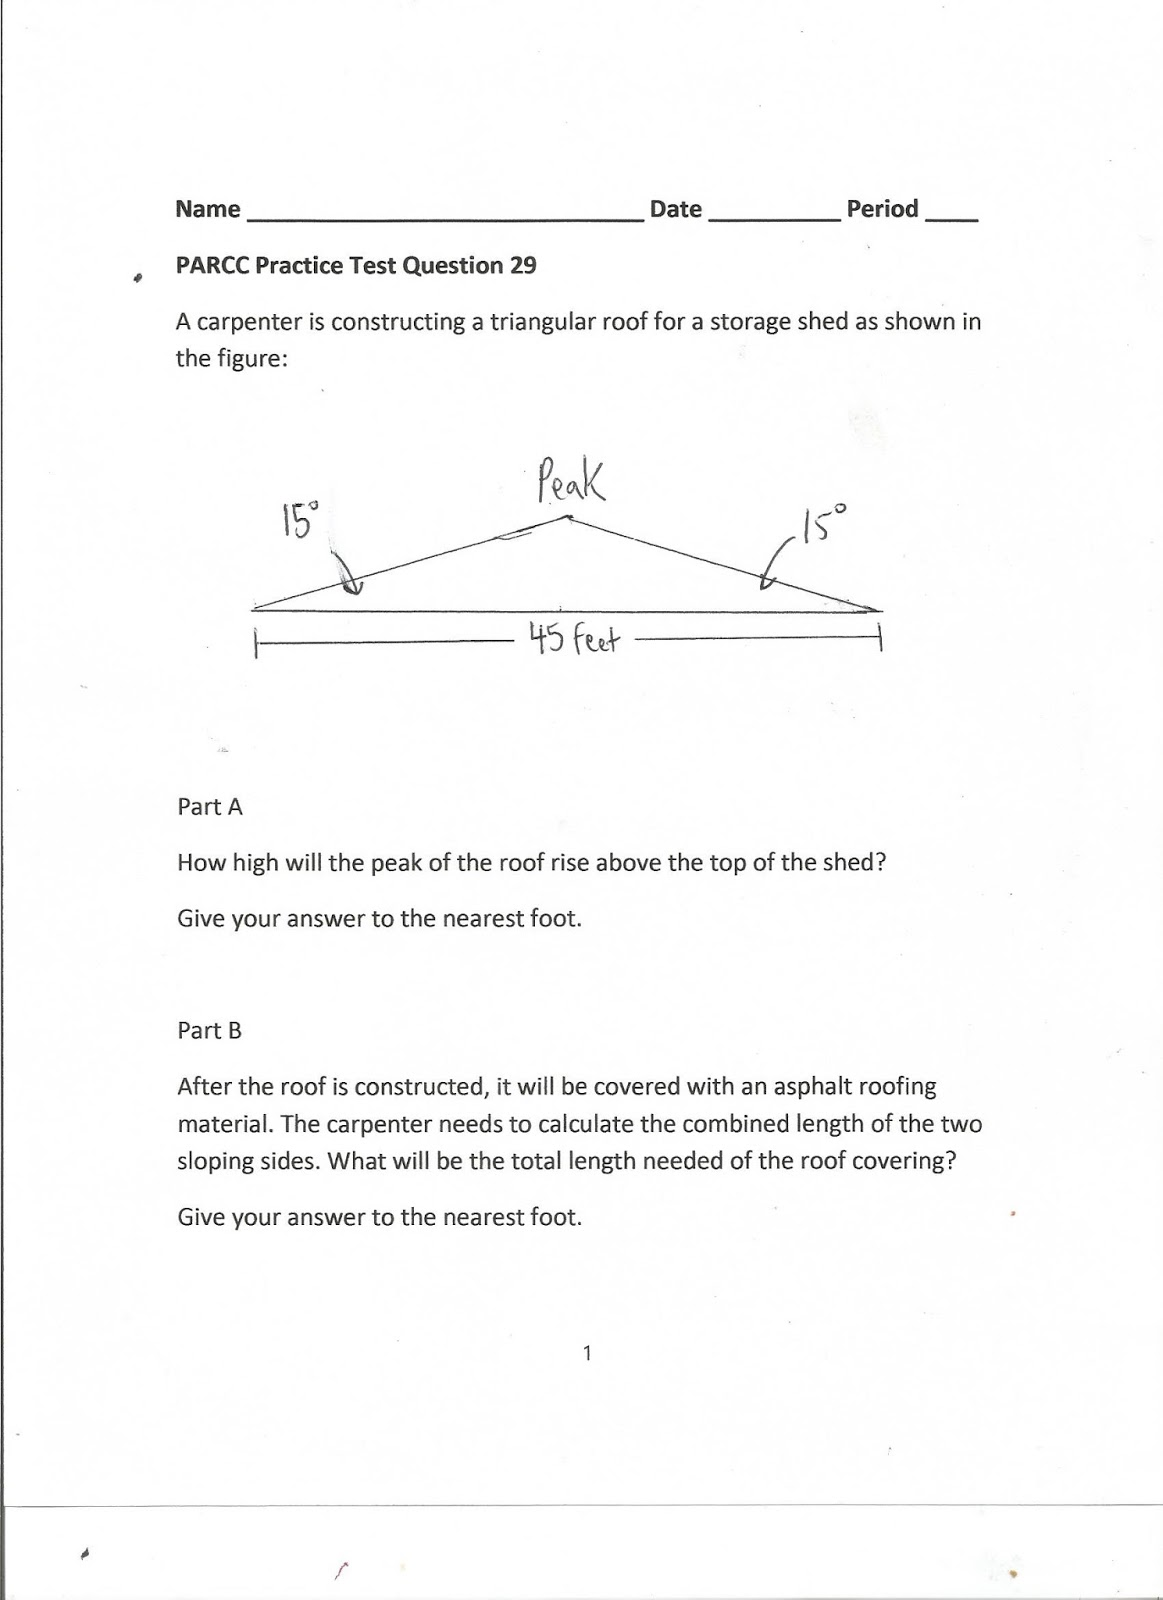 Geometry Common Core Style Parcc Practice Test Question 29 Day 172